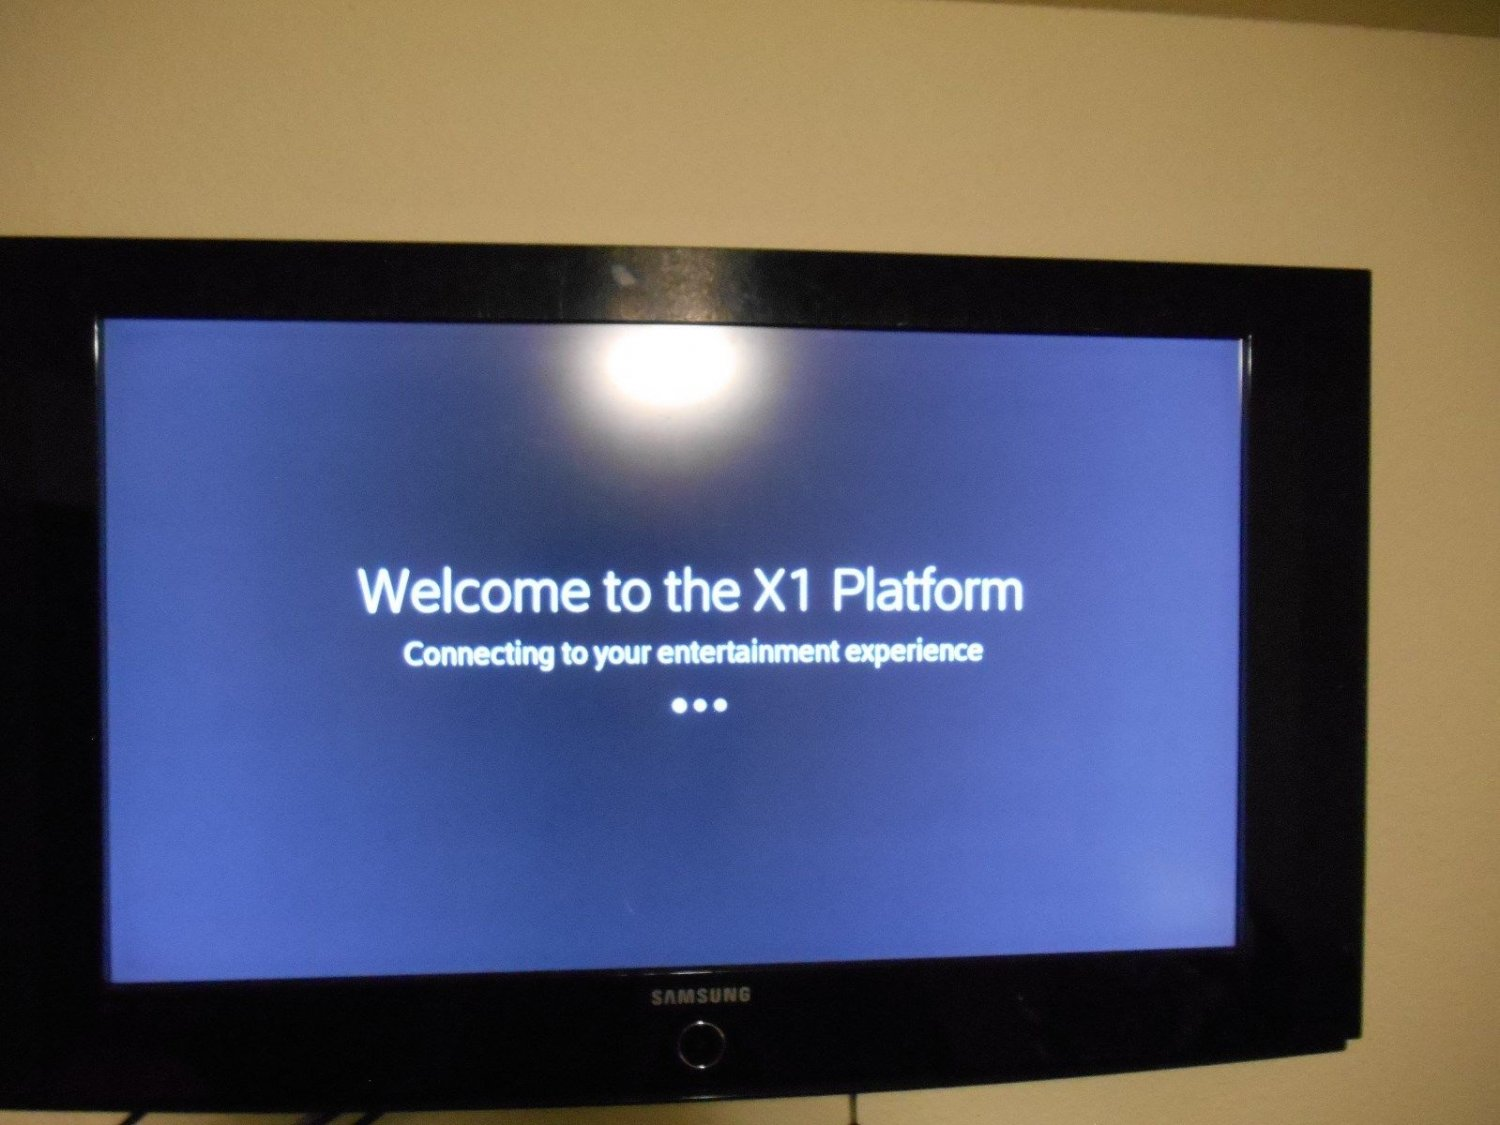 Xfinity Cable Box Connecting To Your Entertainment Experience